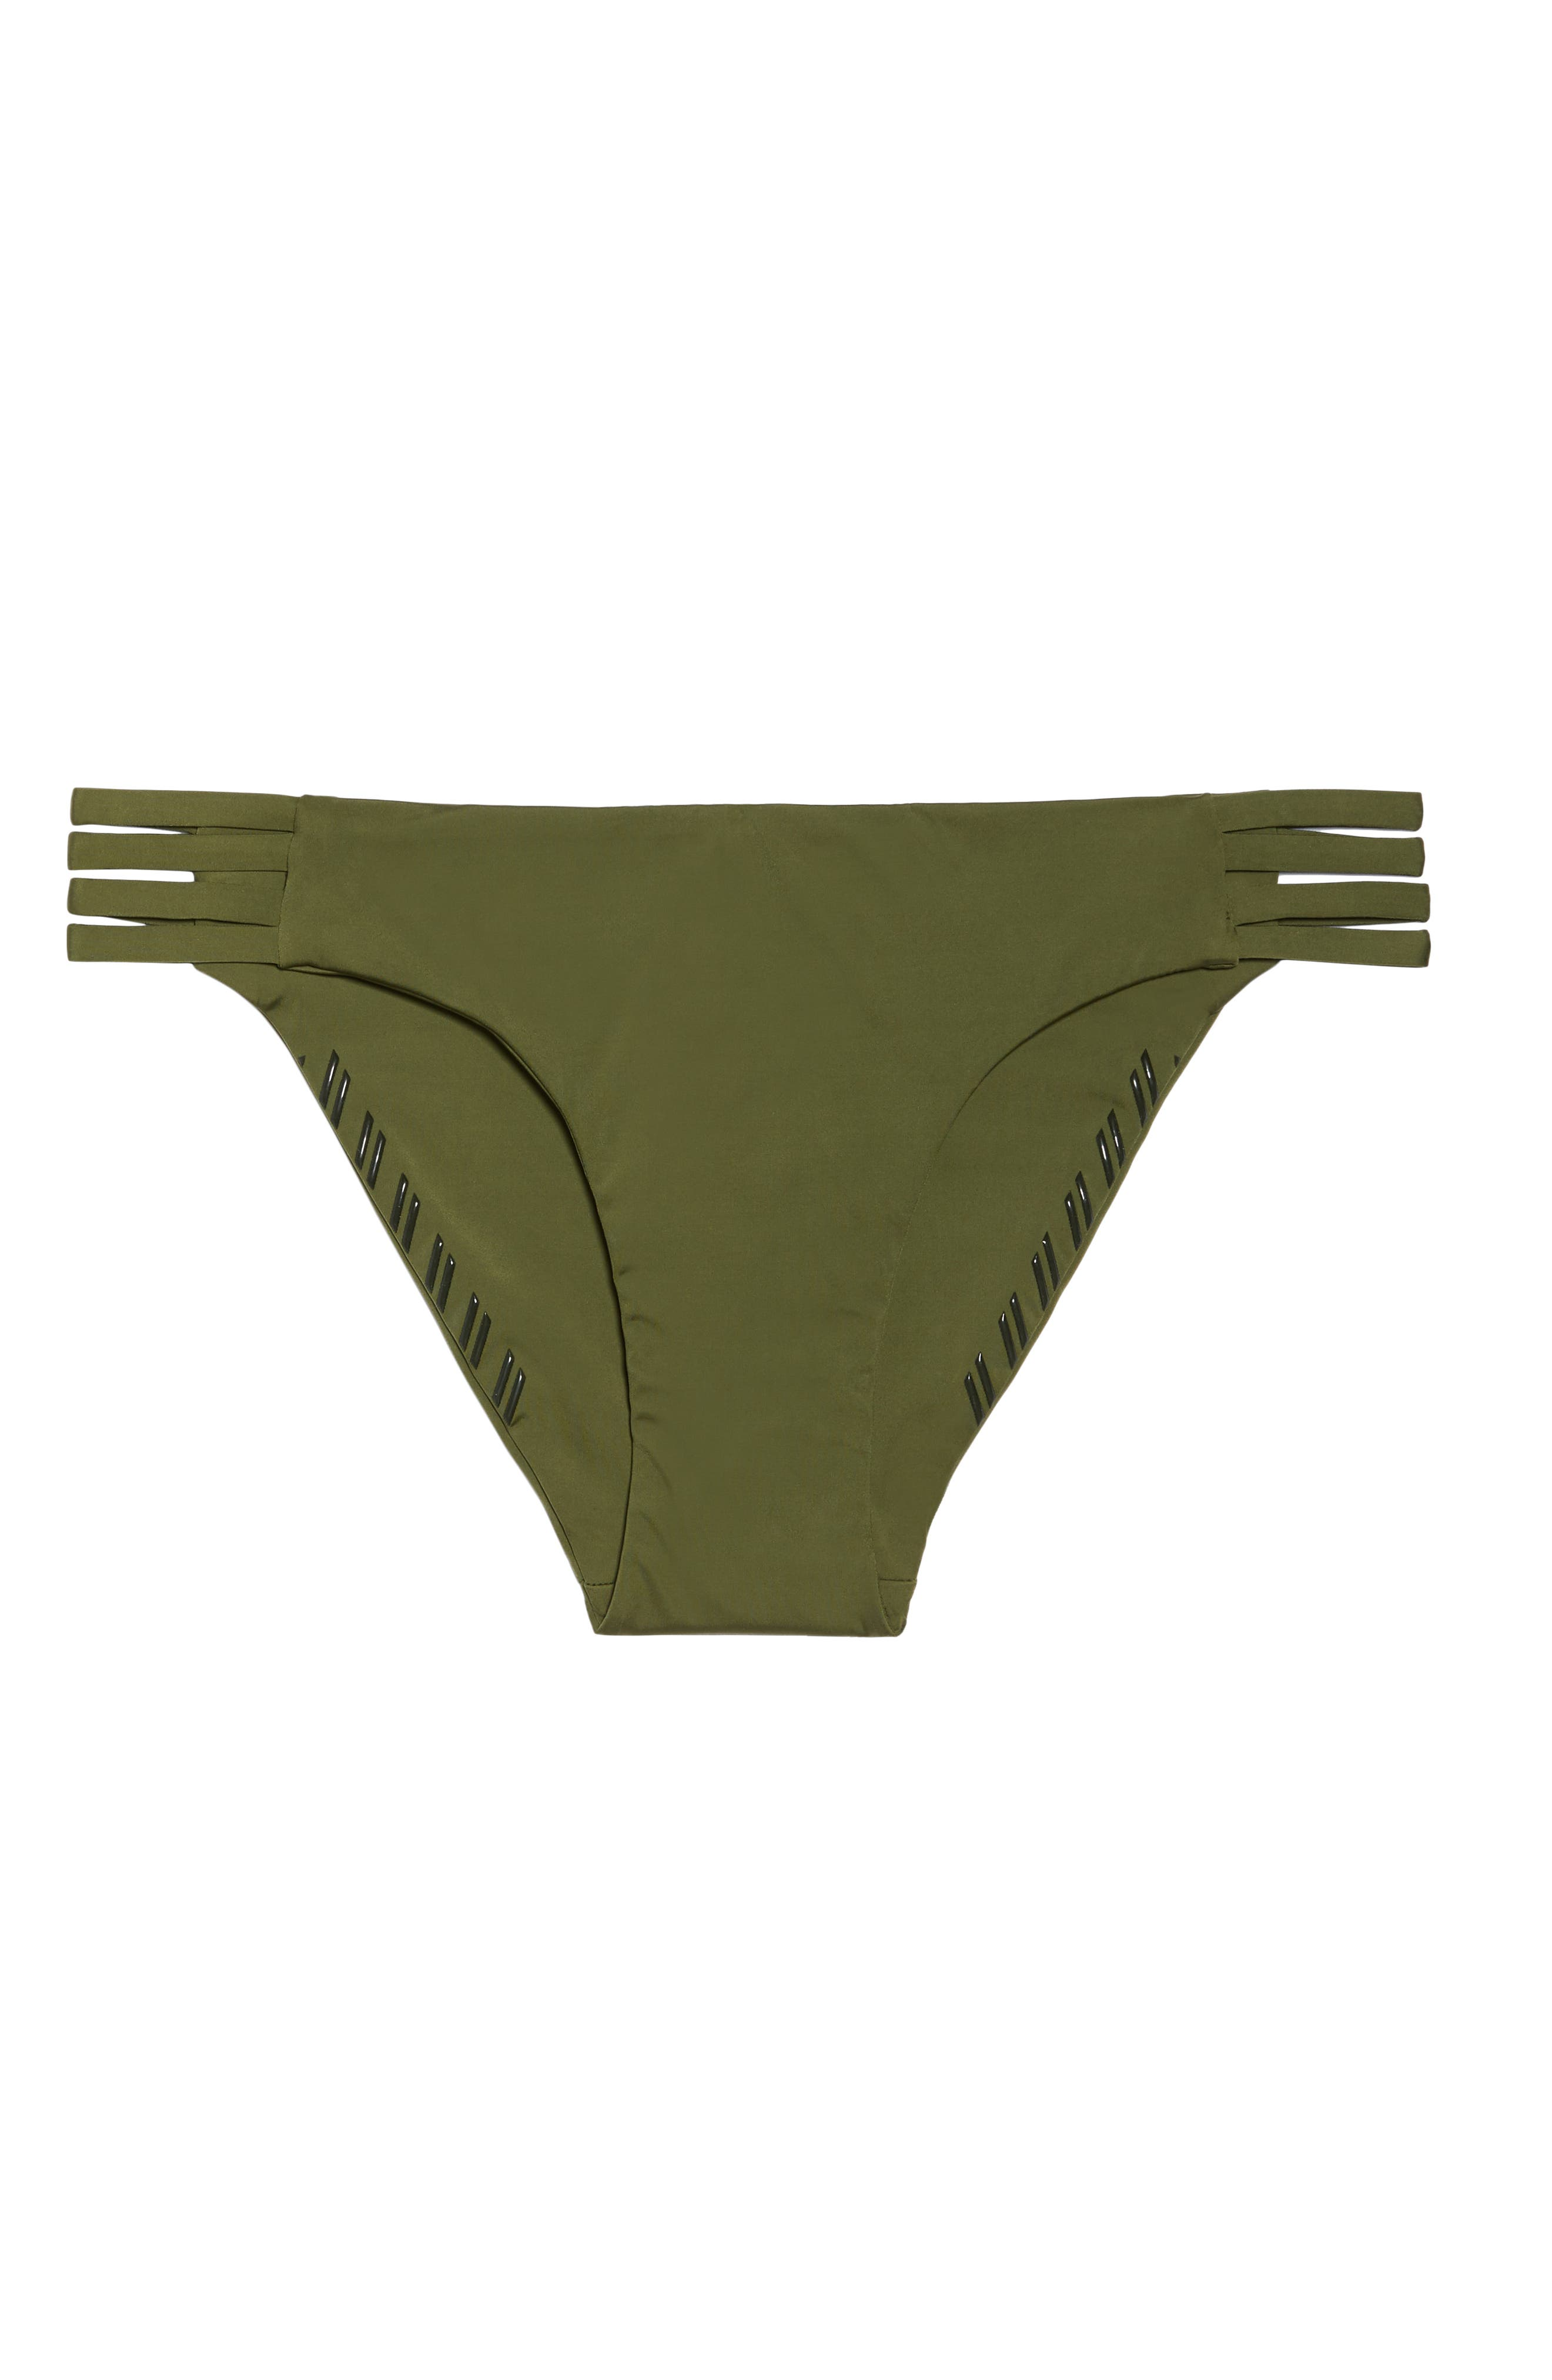 Quick Dry Max Surf Bikini Bottoms,                             Alternate thumbnail 9, color,                             Olive Canvas